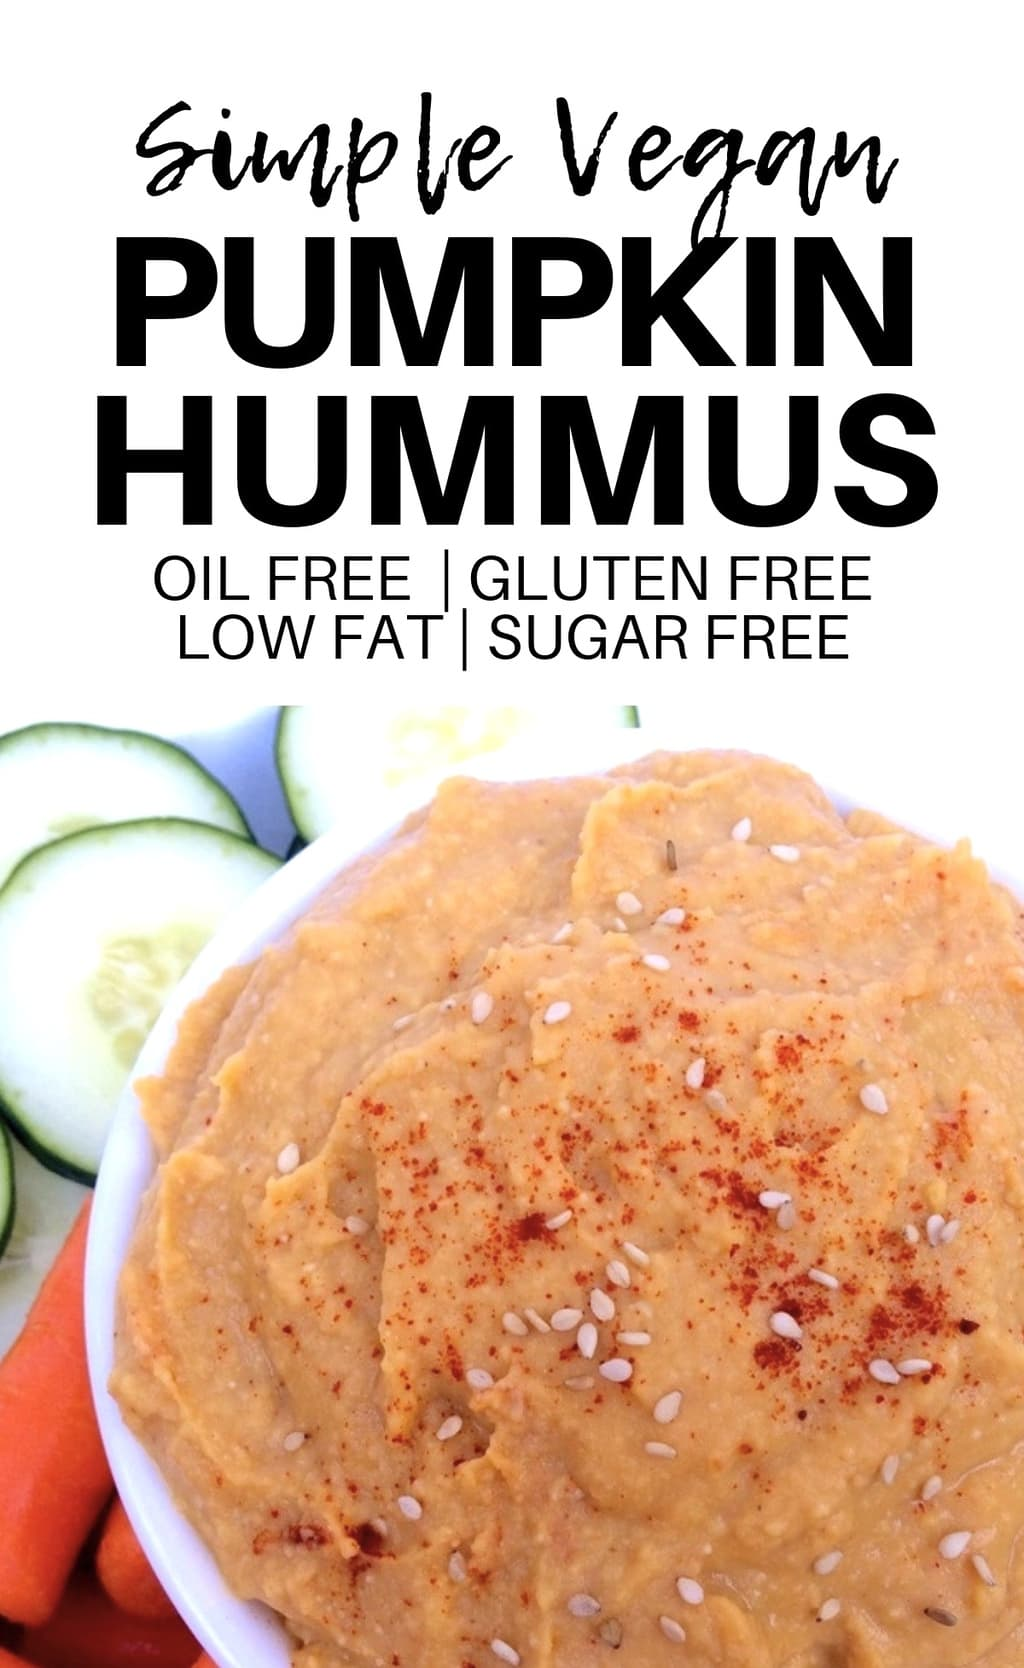 This Vegan Pumpkin Hummus is the perfect Fall twist on classic hummus! It's totally delicious and also gluten-free, oil-free, low-fat, and sugar-free. Super easy to make, too!